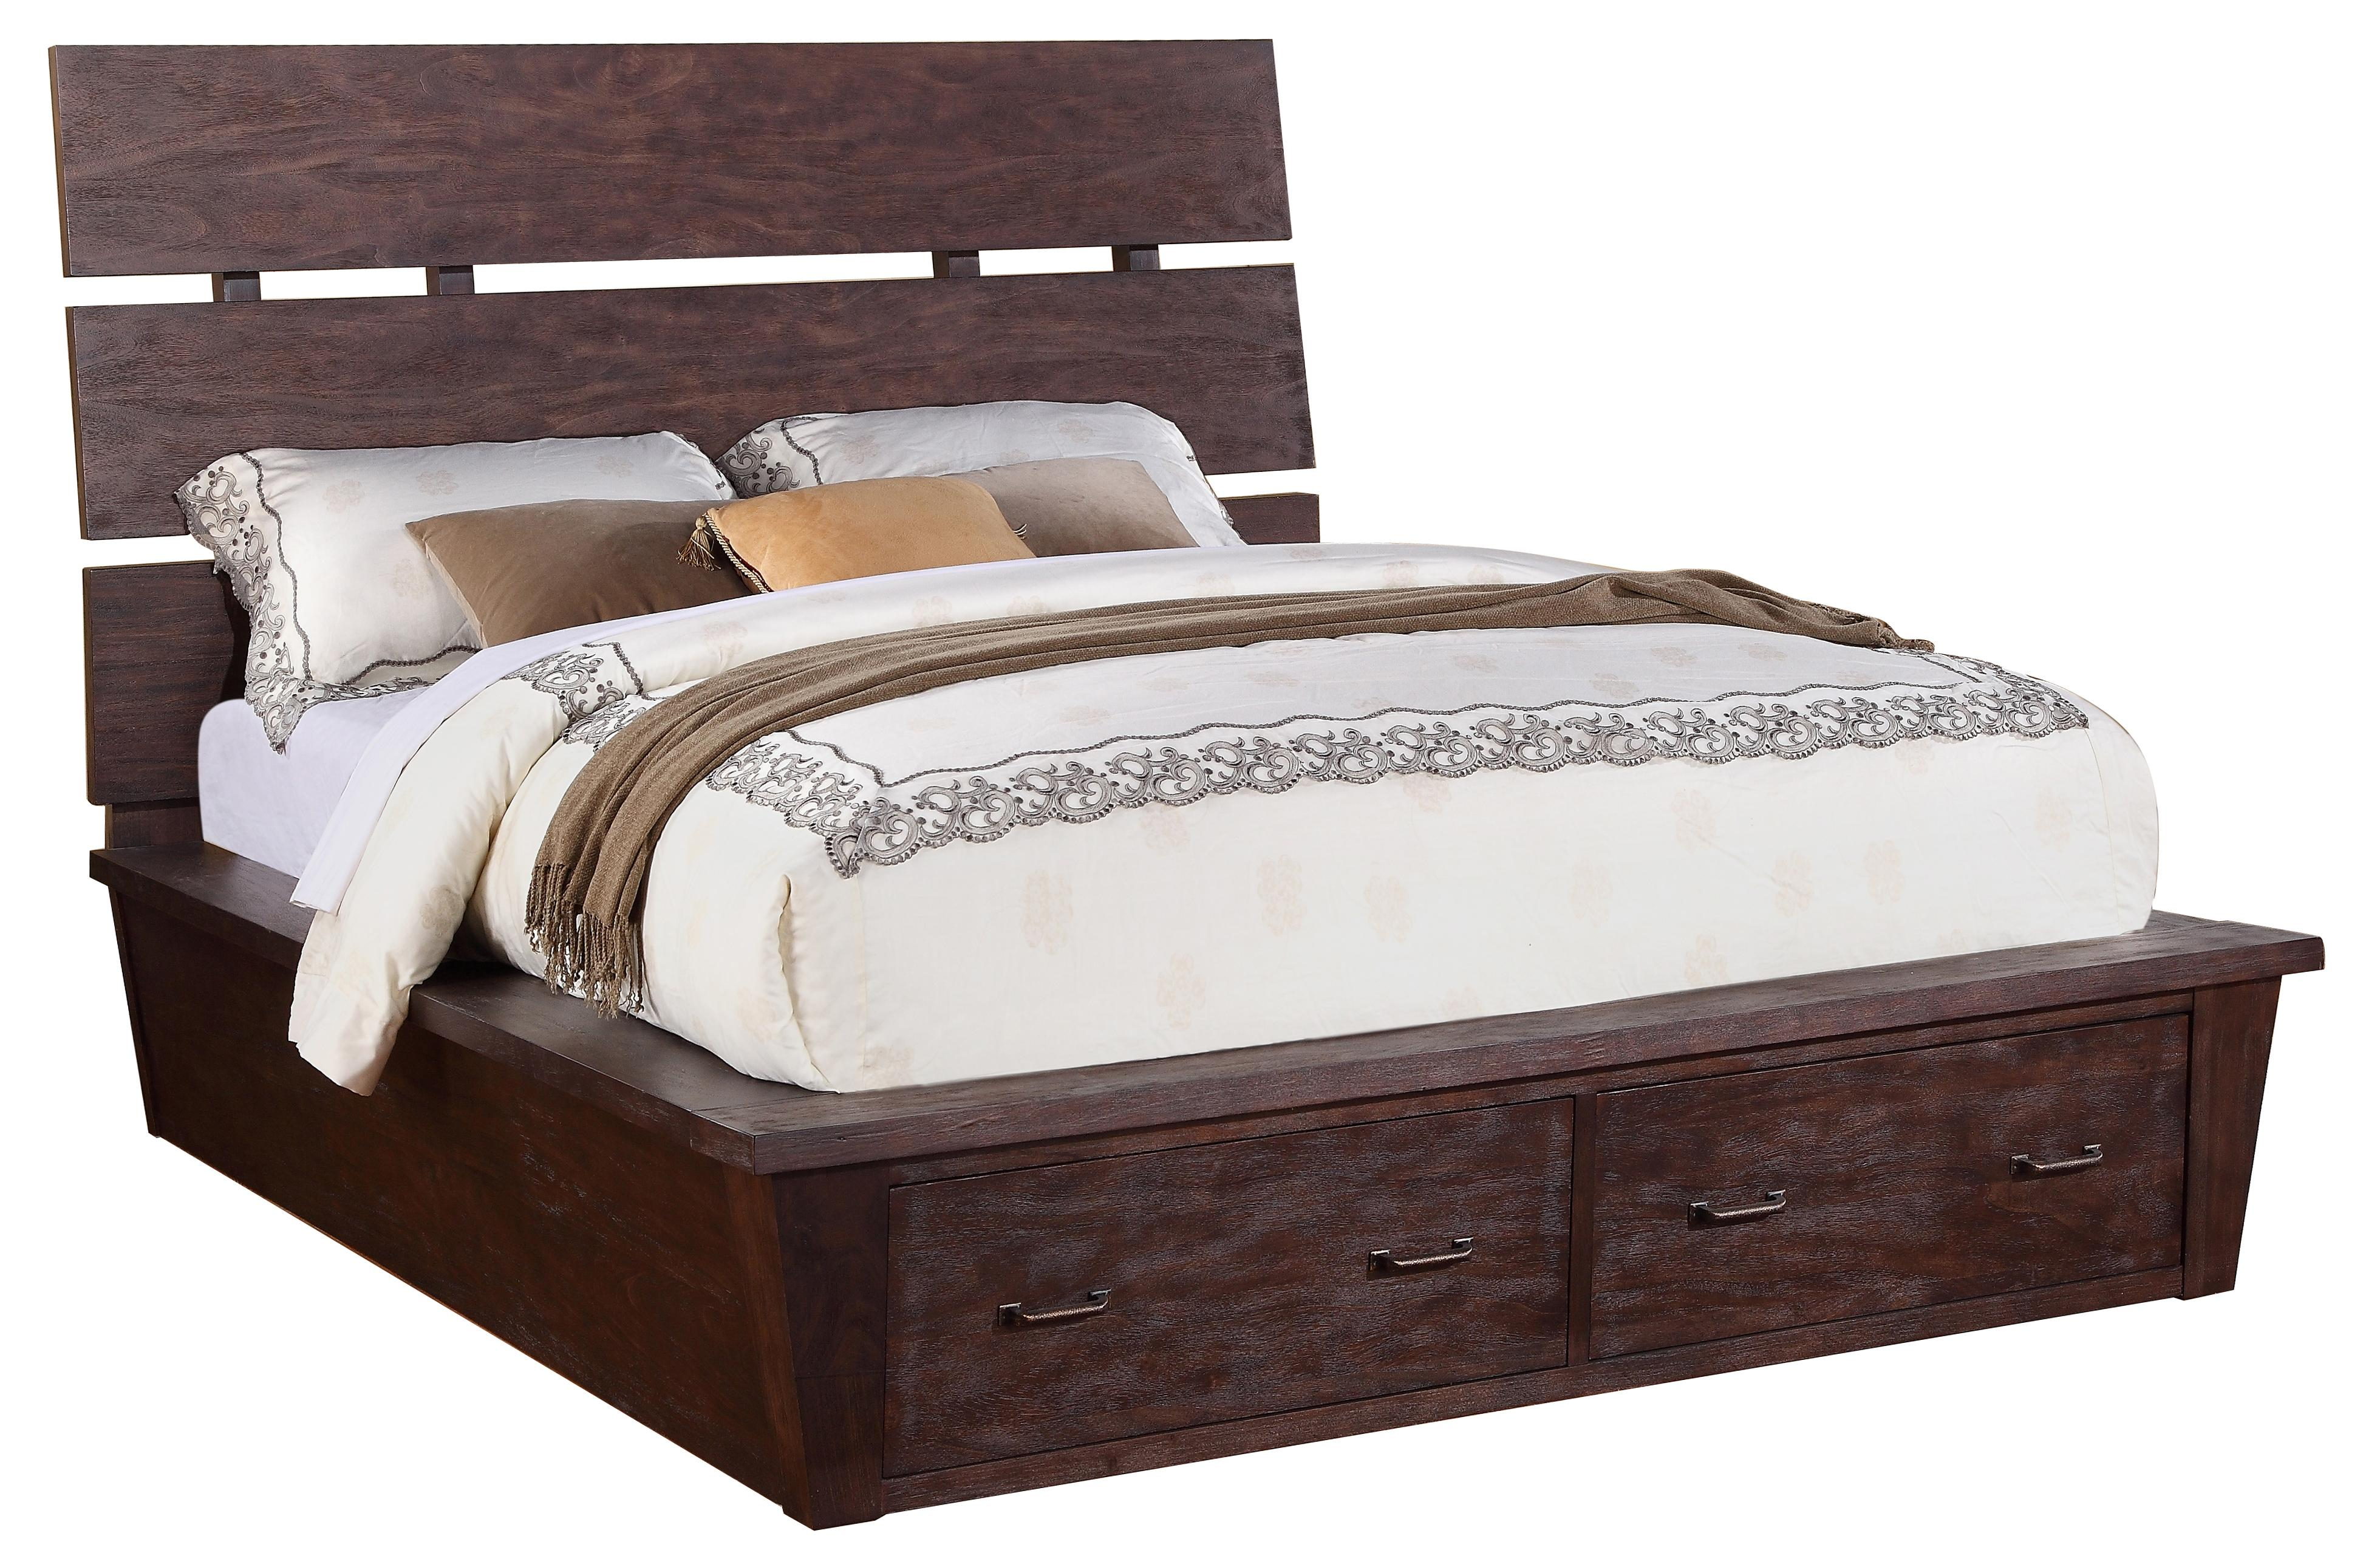 Riverside Furniture Promenade  Queen Platform Storage Bed - Item Number: 84574+73+76